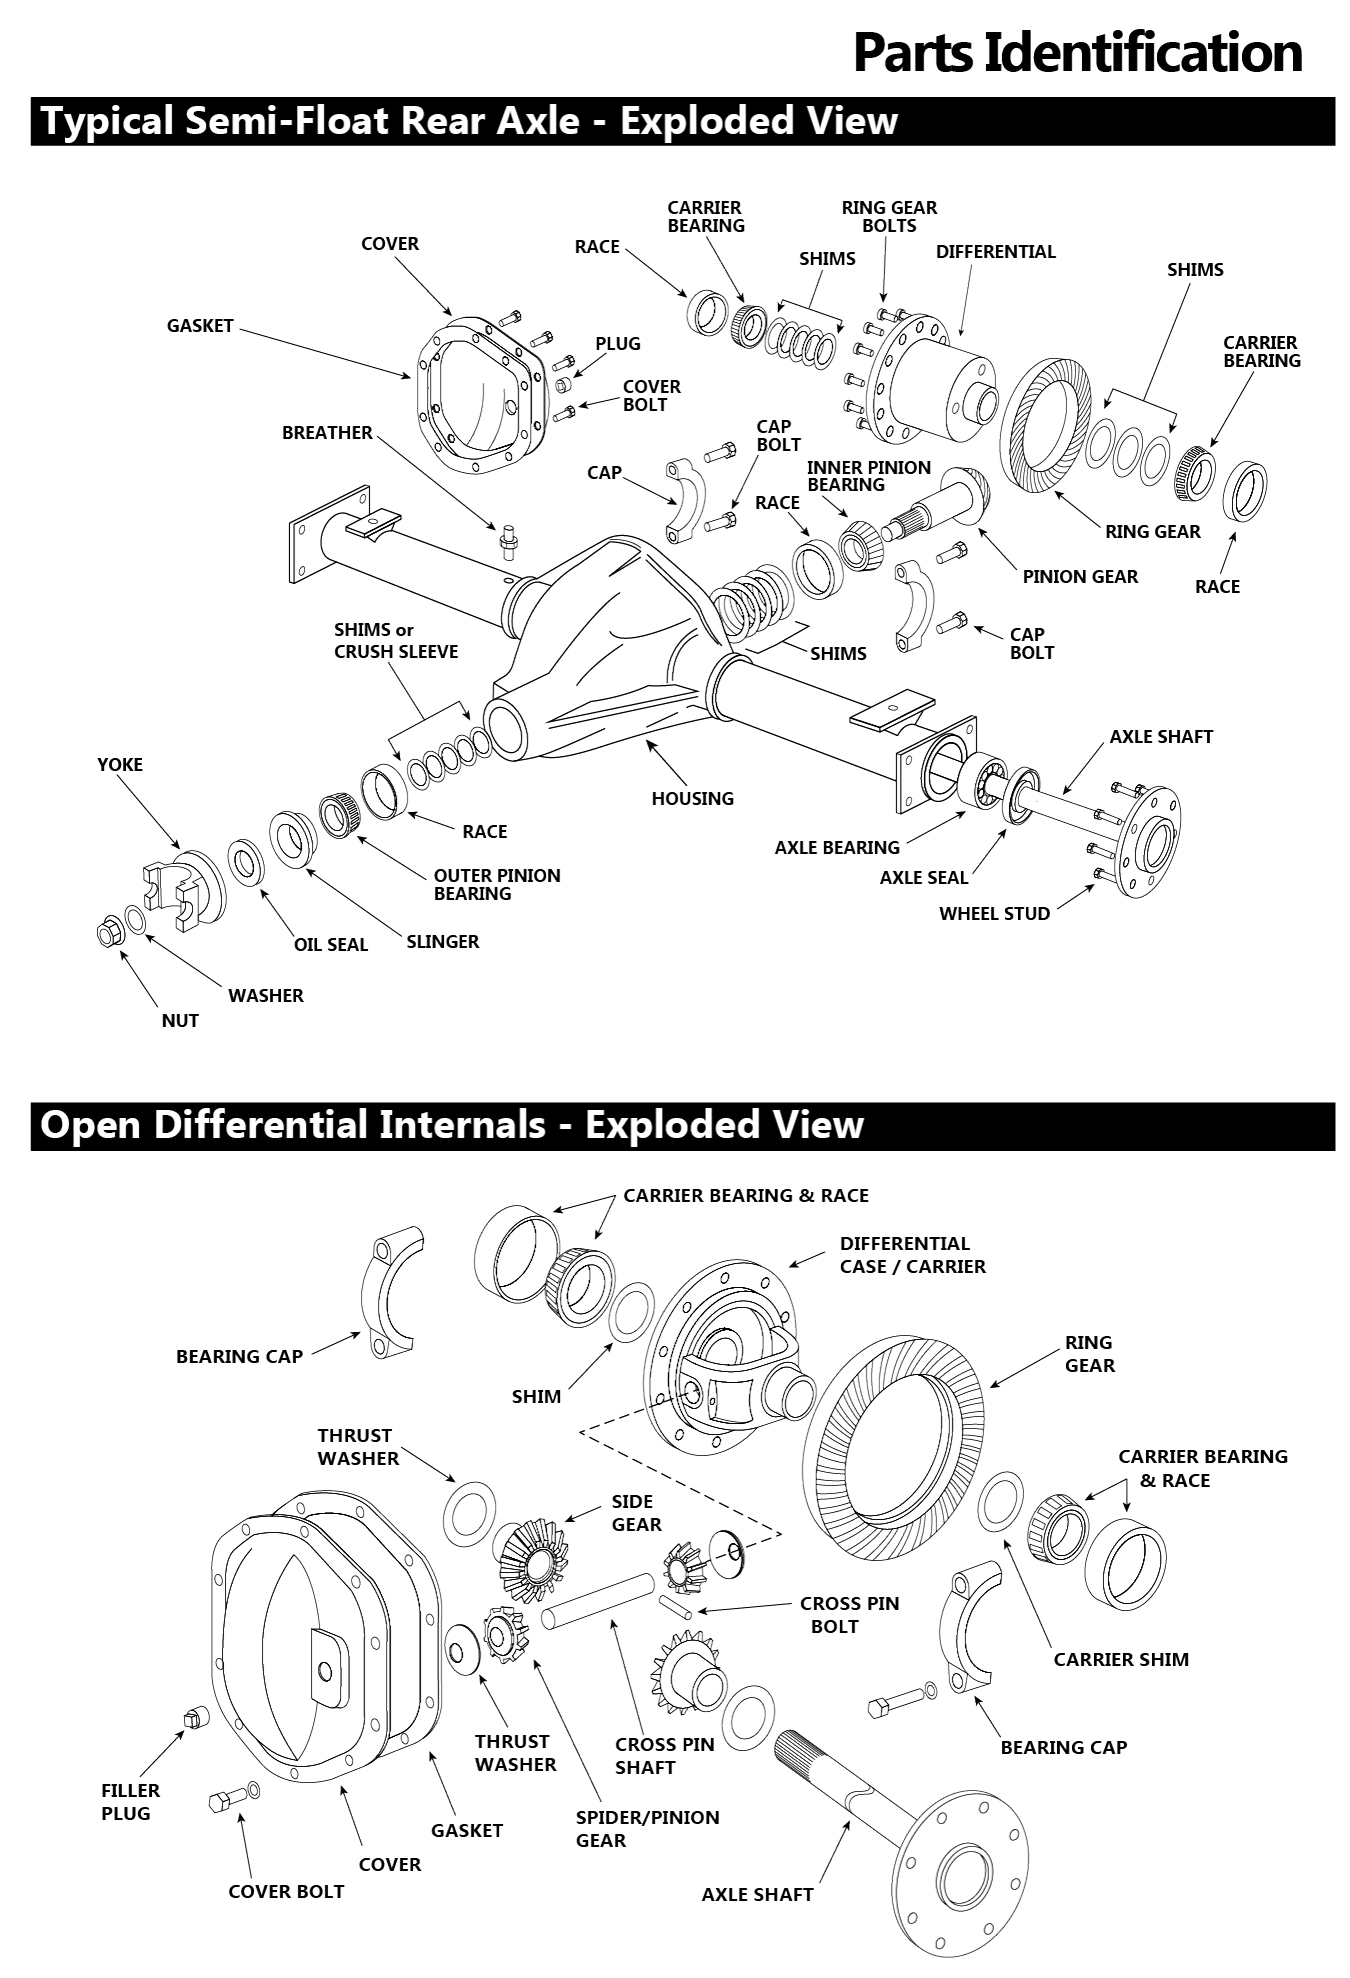 2004 Toyota Tundra Limited Parts Diagram Html